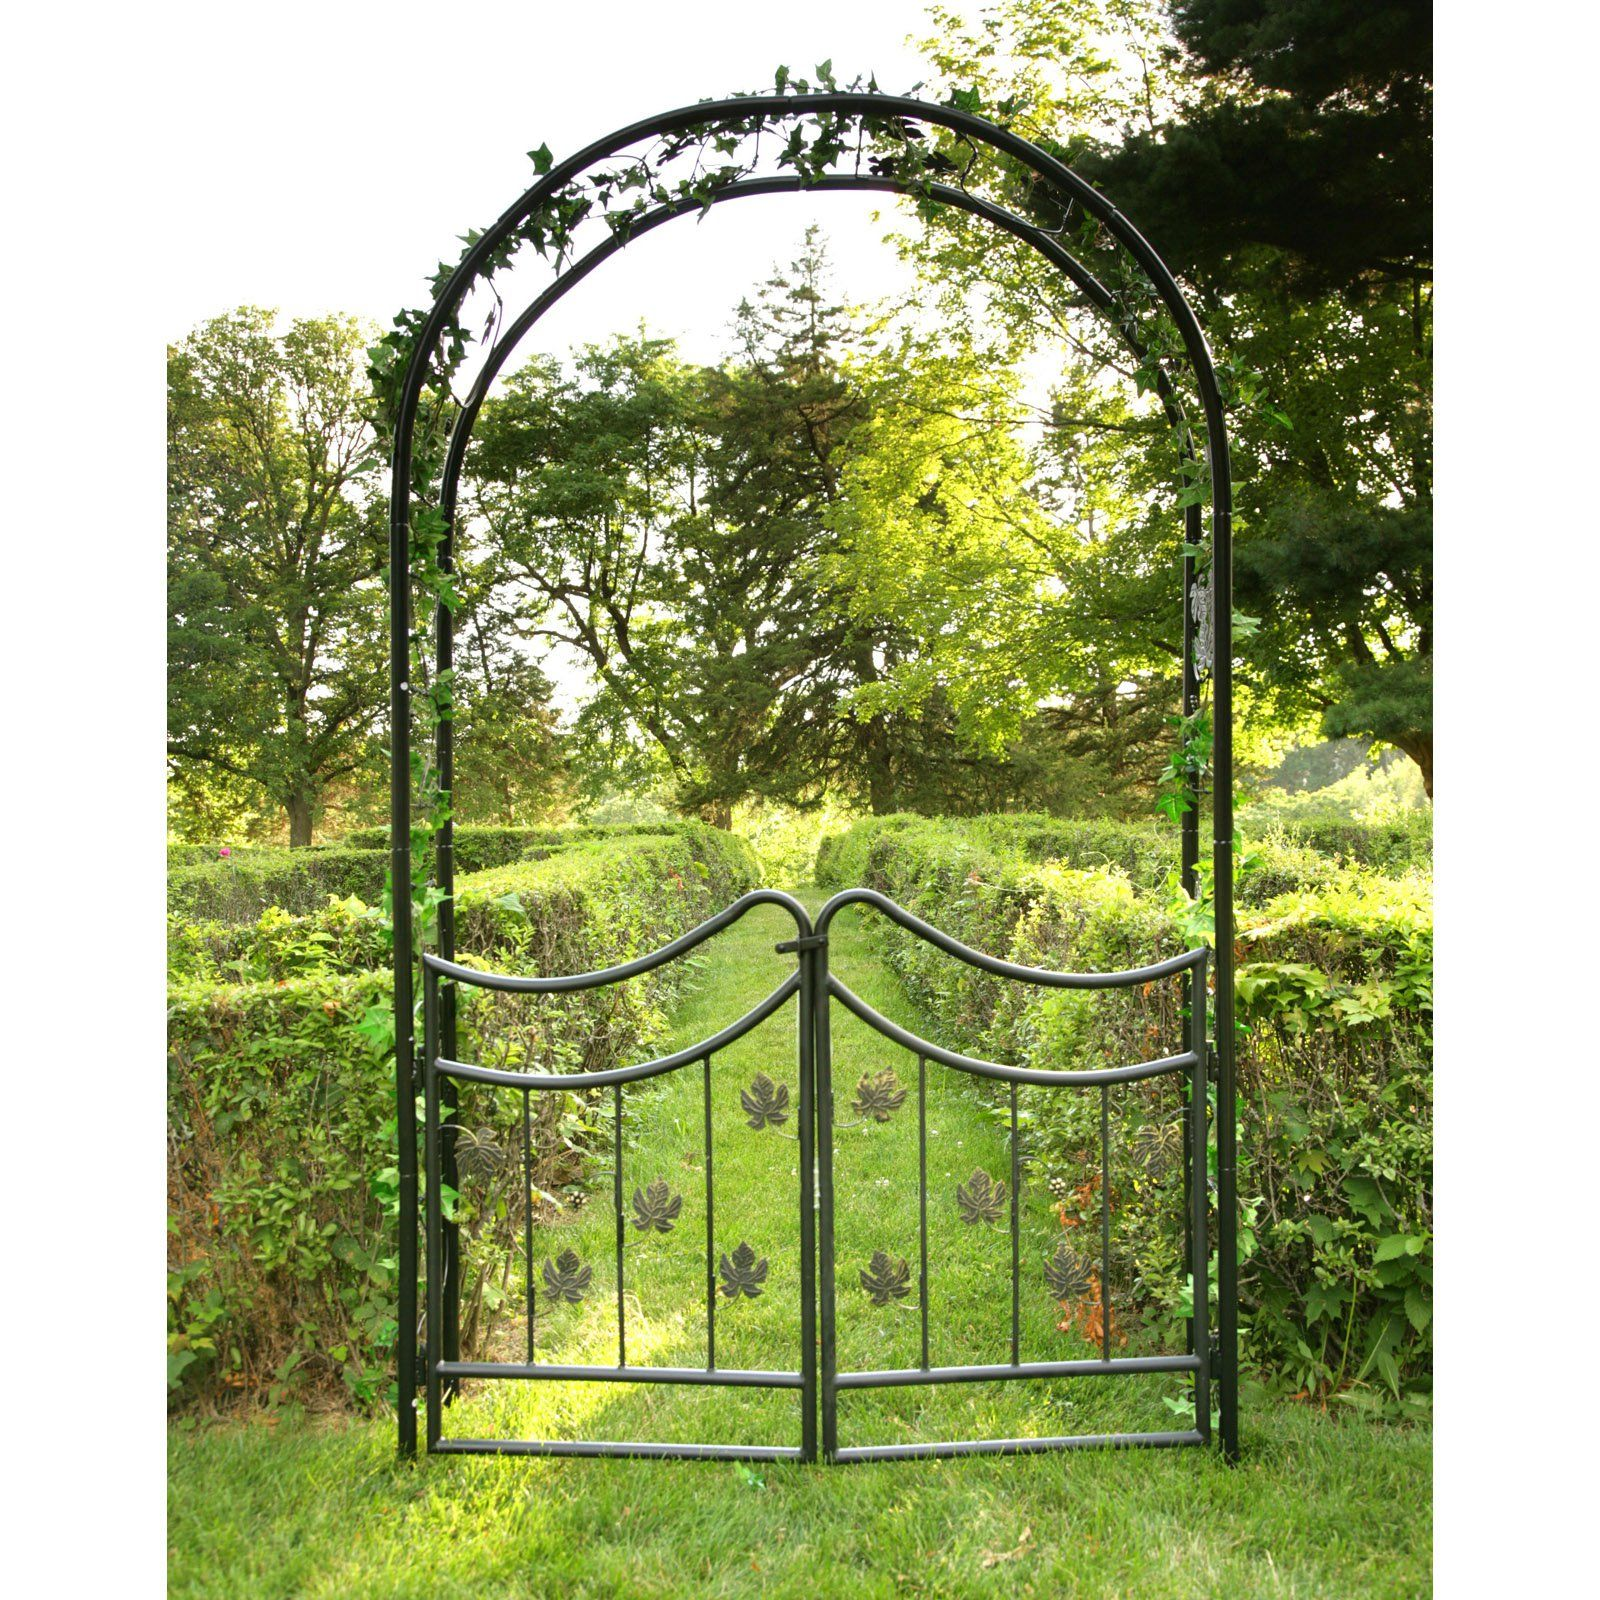 Exceptionnel Tierra Derco Bacchus Iron Arch Arbor With Gate   The Tierra Derco Bacchus  Iron Arch Arbor With Gate Features A Black Polyester Powder Coating For A  Lasting ...